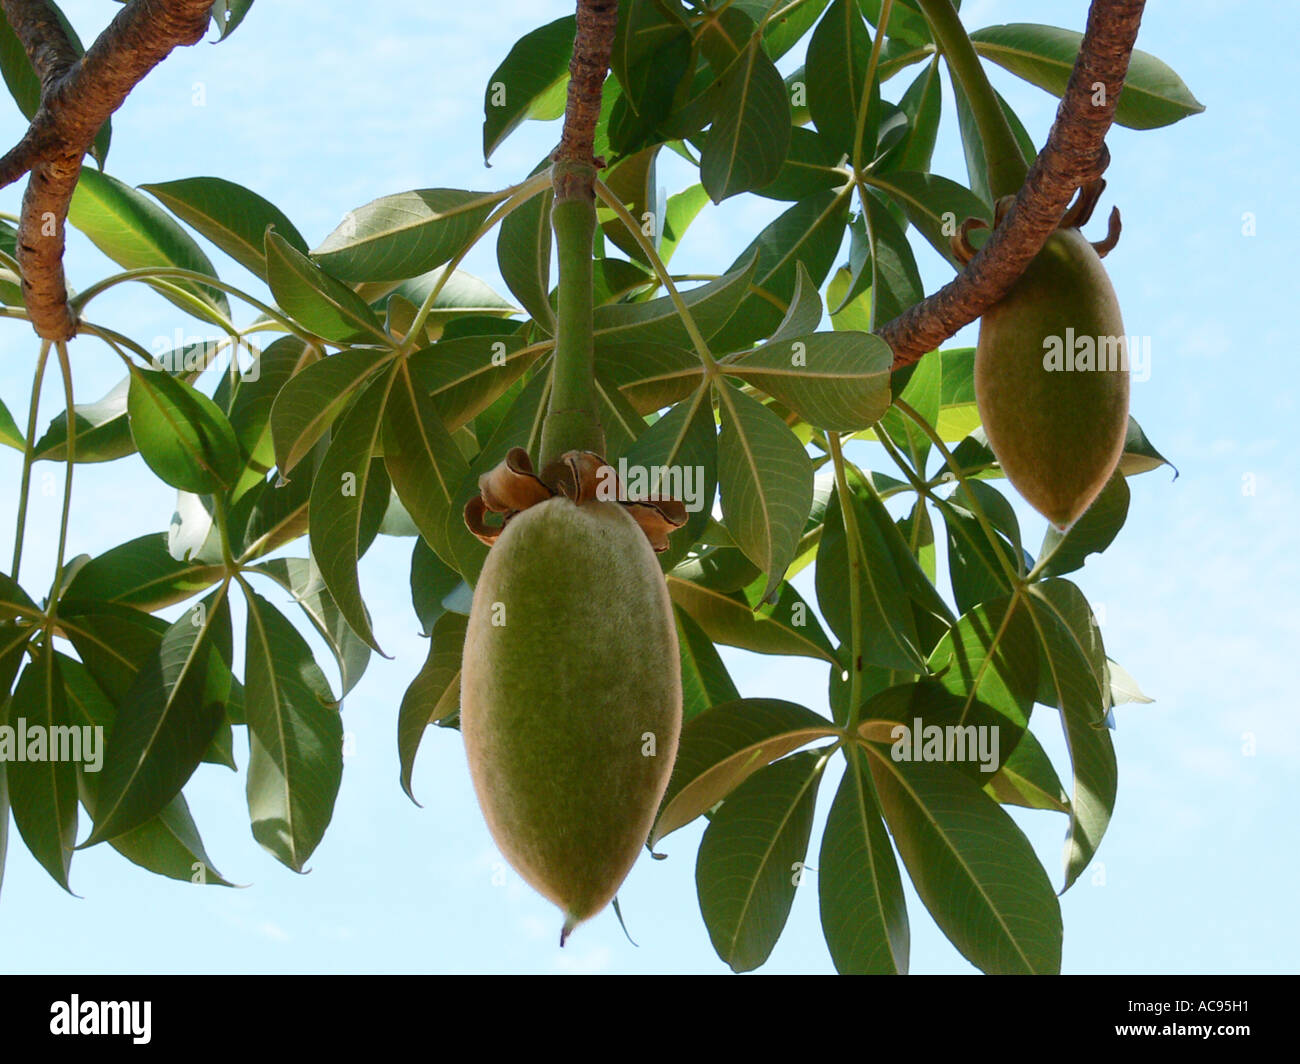 Baobab tree fruit